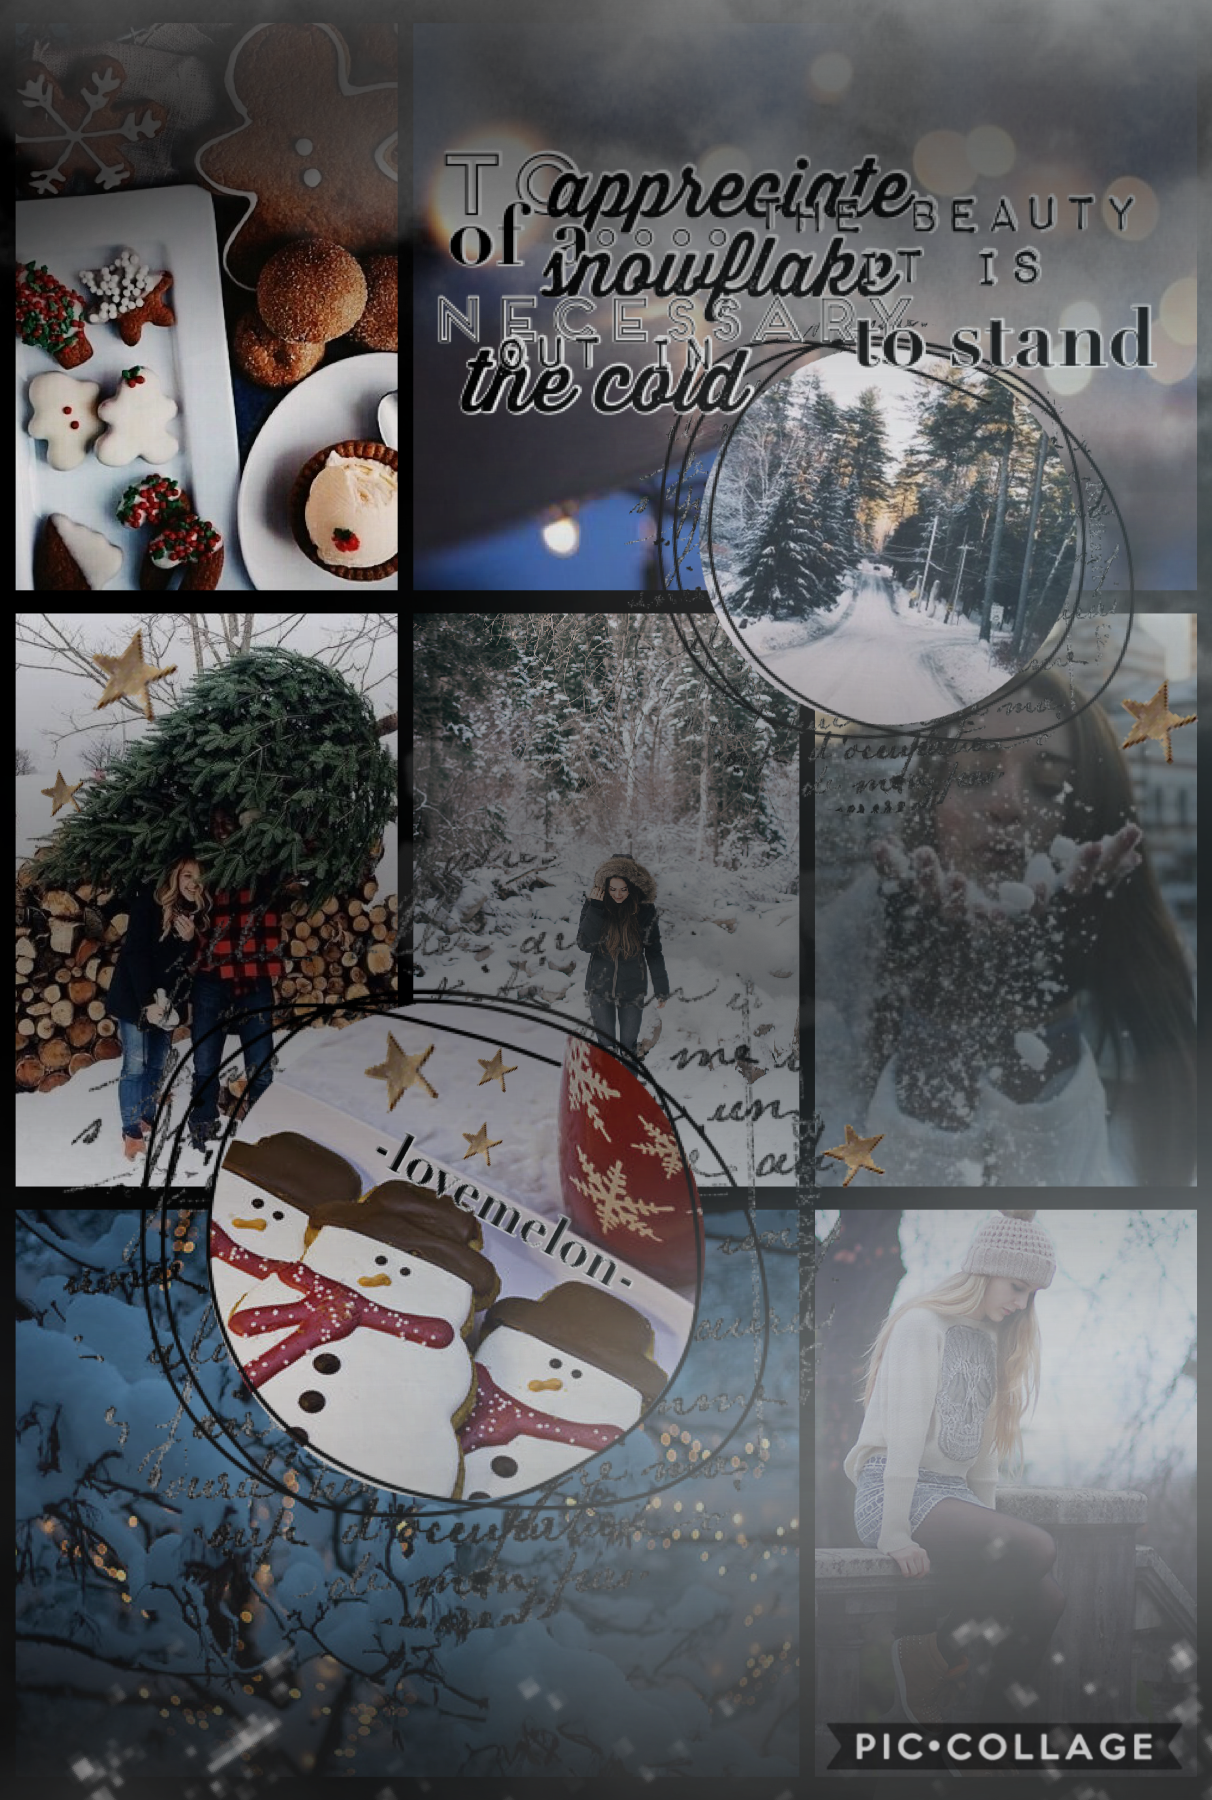 ✰✰✰tap✰✰✰  my first winter collage!! i hope you enjoy!! ❄️🌨🌫  i'm not really sticking with a style, just doing random things.  -lovemelon❤️🍉-